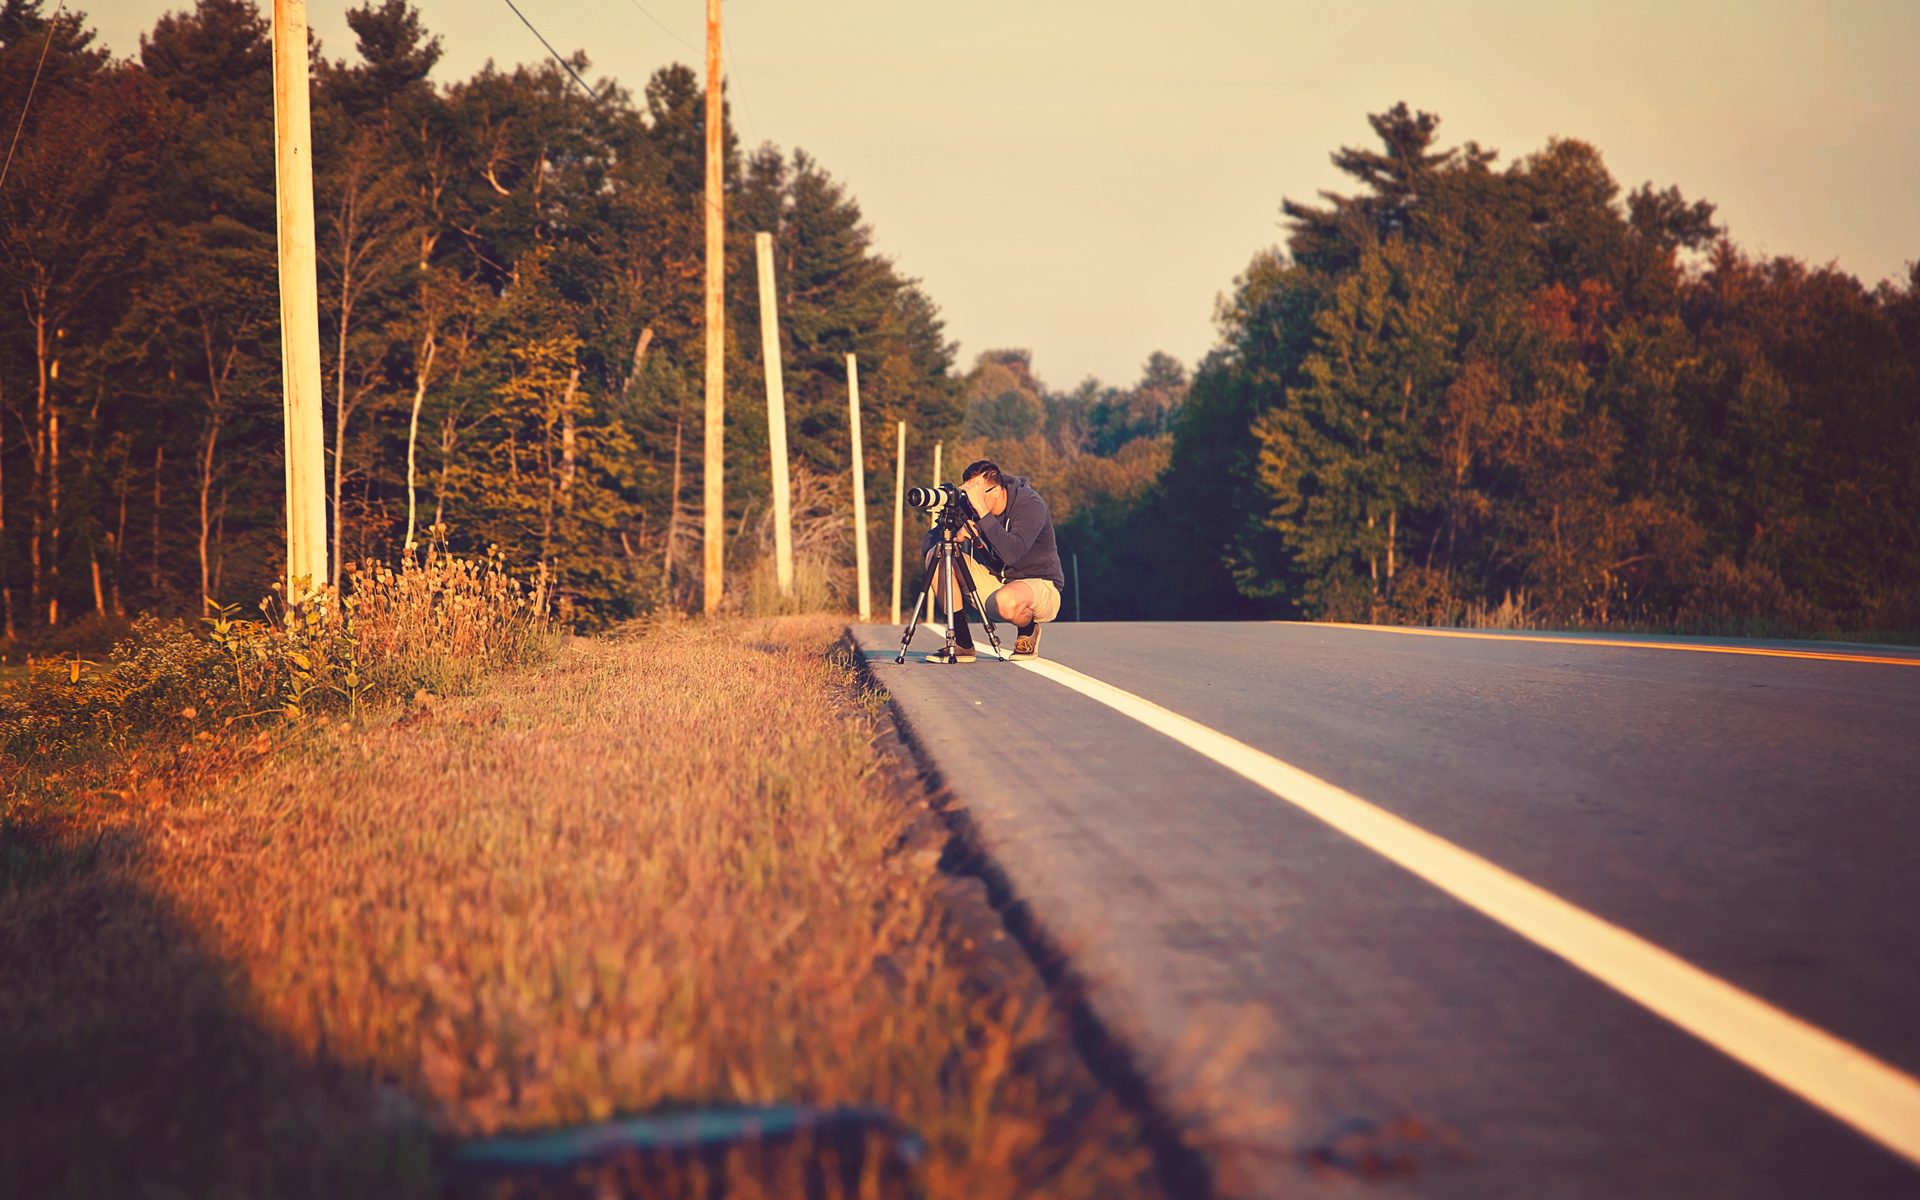 filming-sunrise-on-side-of-road-maine-parisleaf.jpg